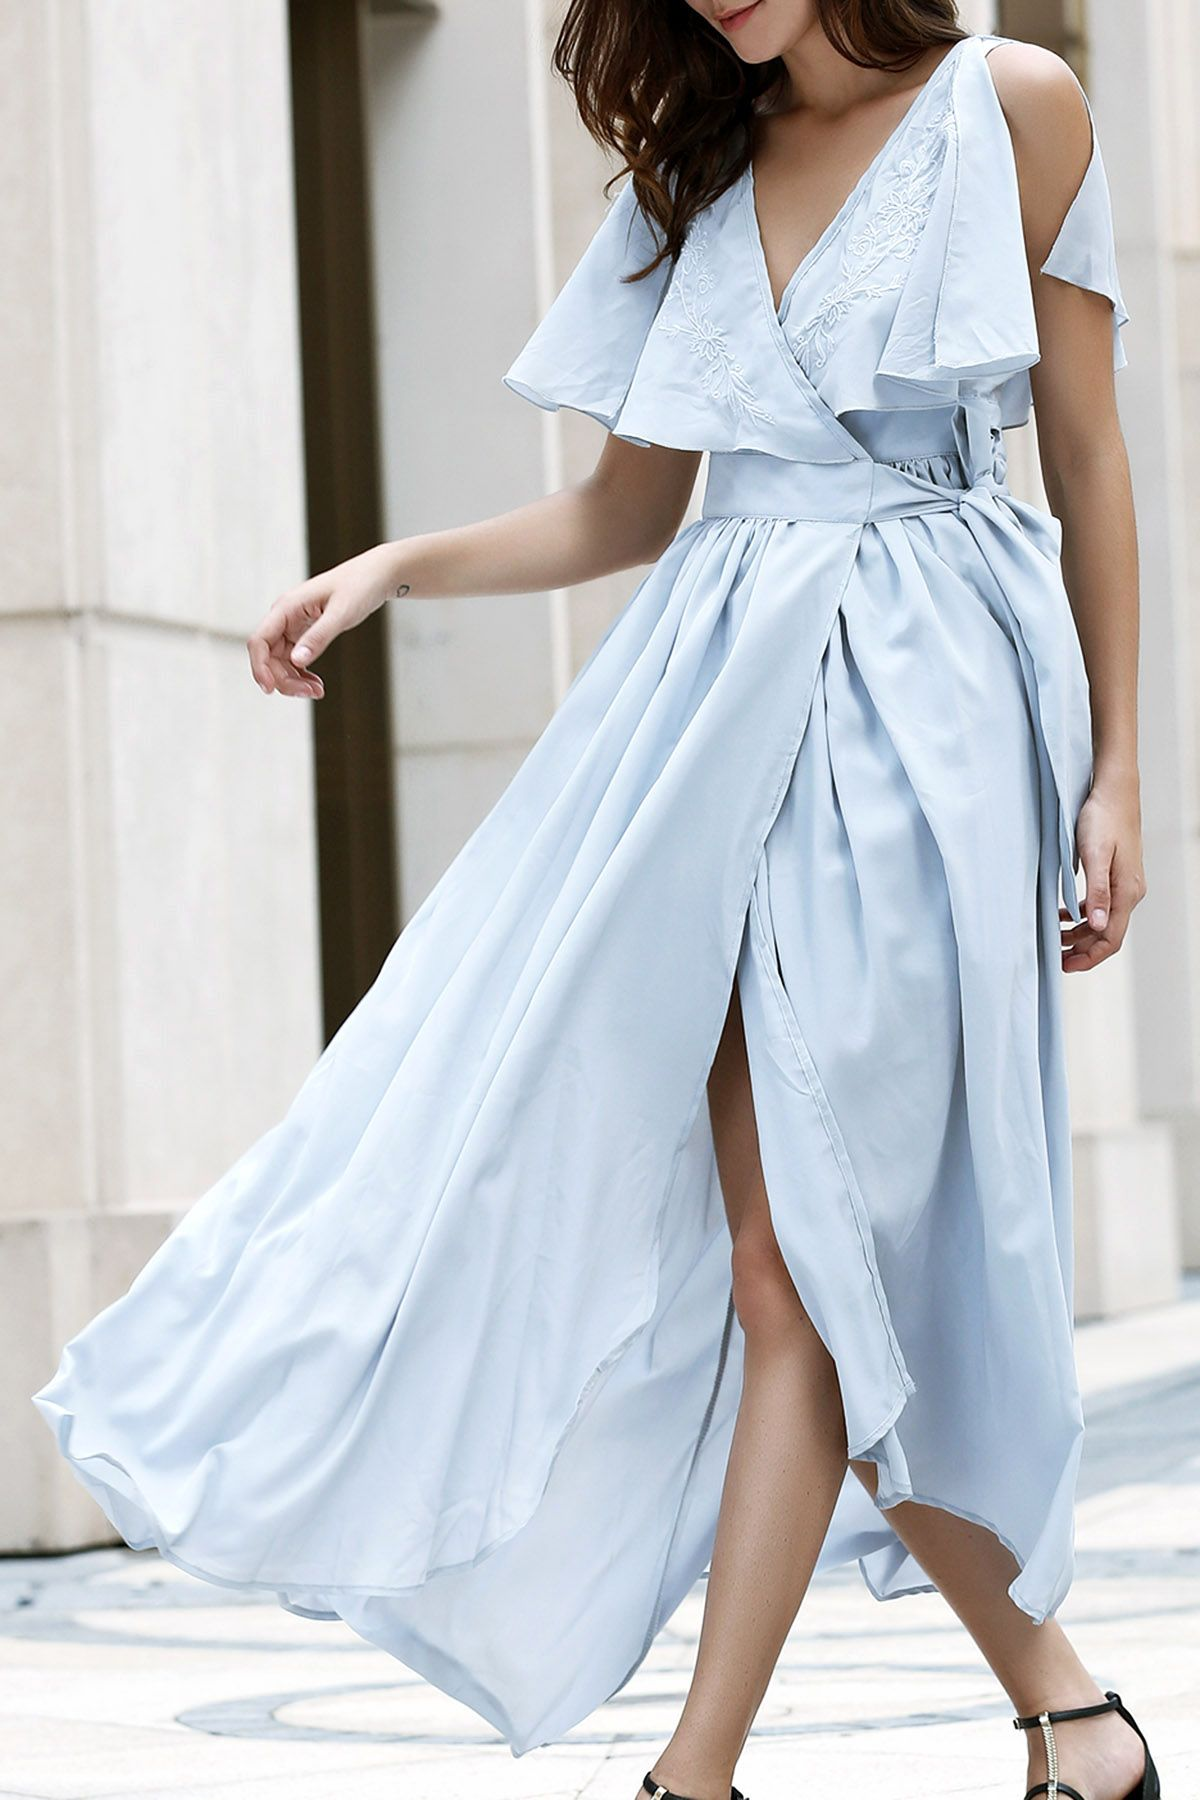 High slit flounce ruffles plunging neck sleeveless dress idfta